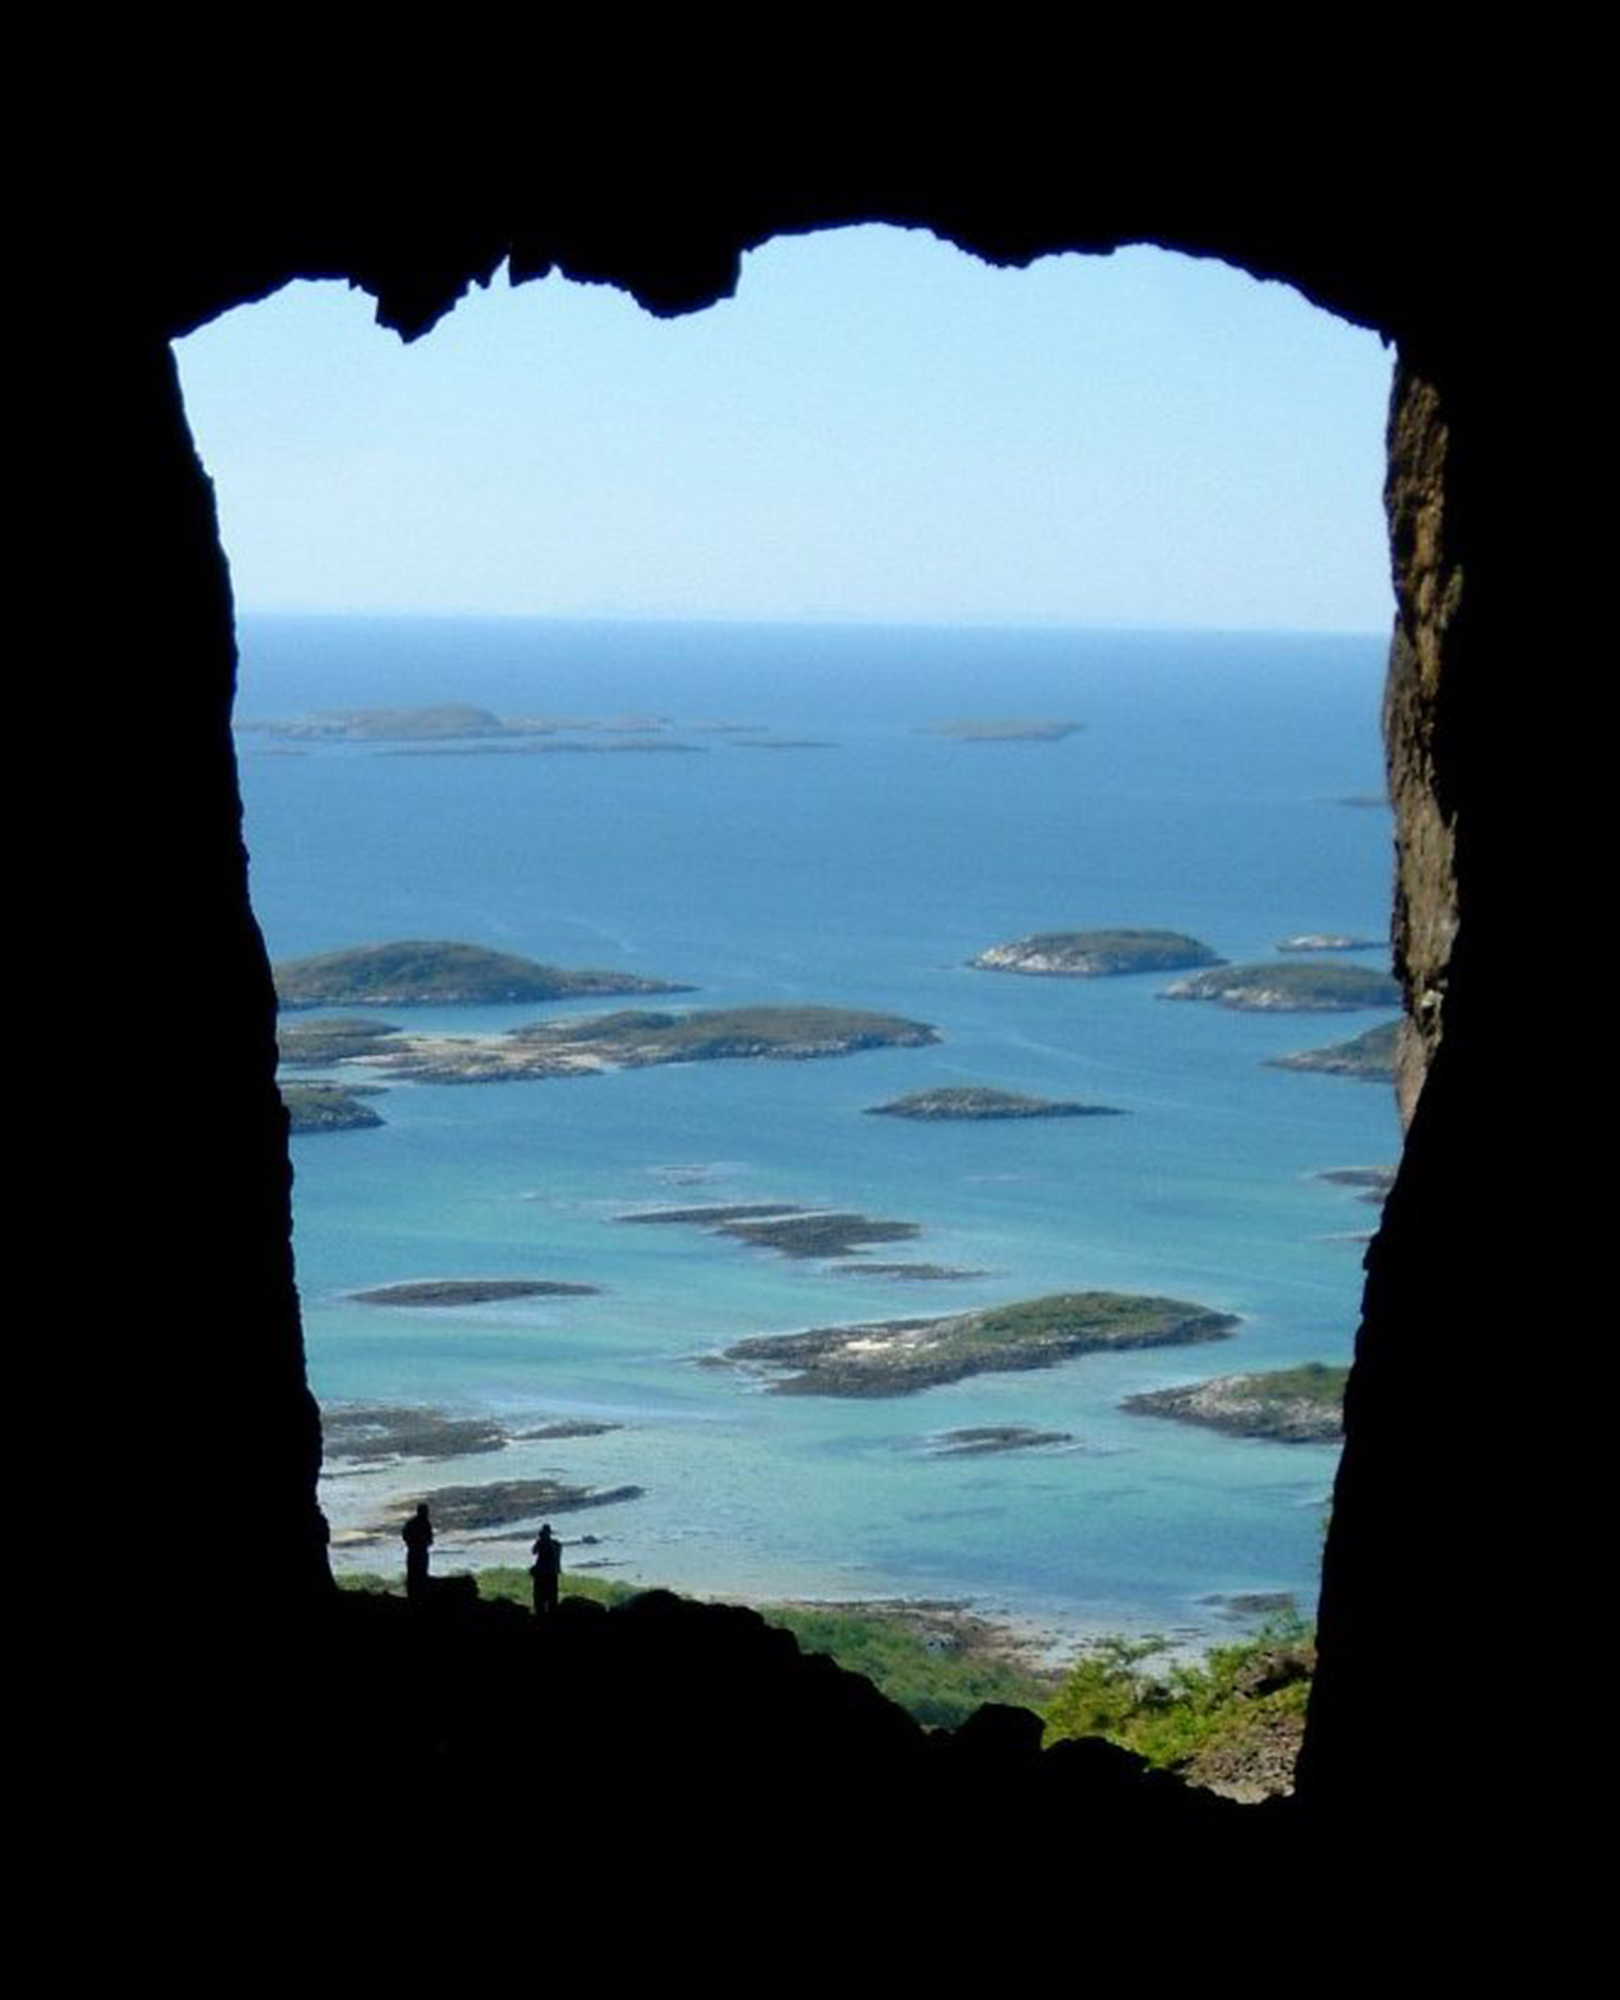 View from the hole through the mountain Torghatten, Brønnøysund.